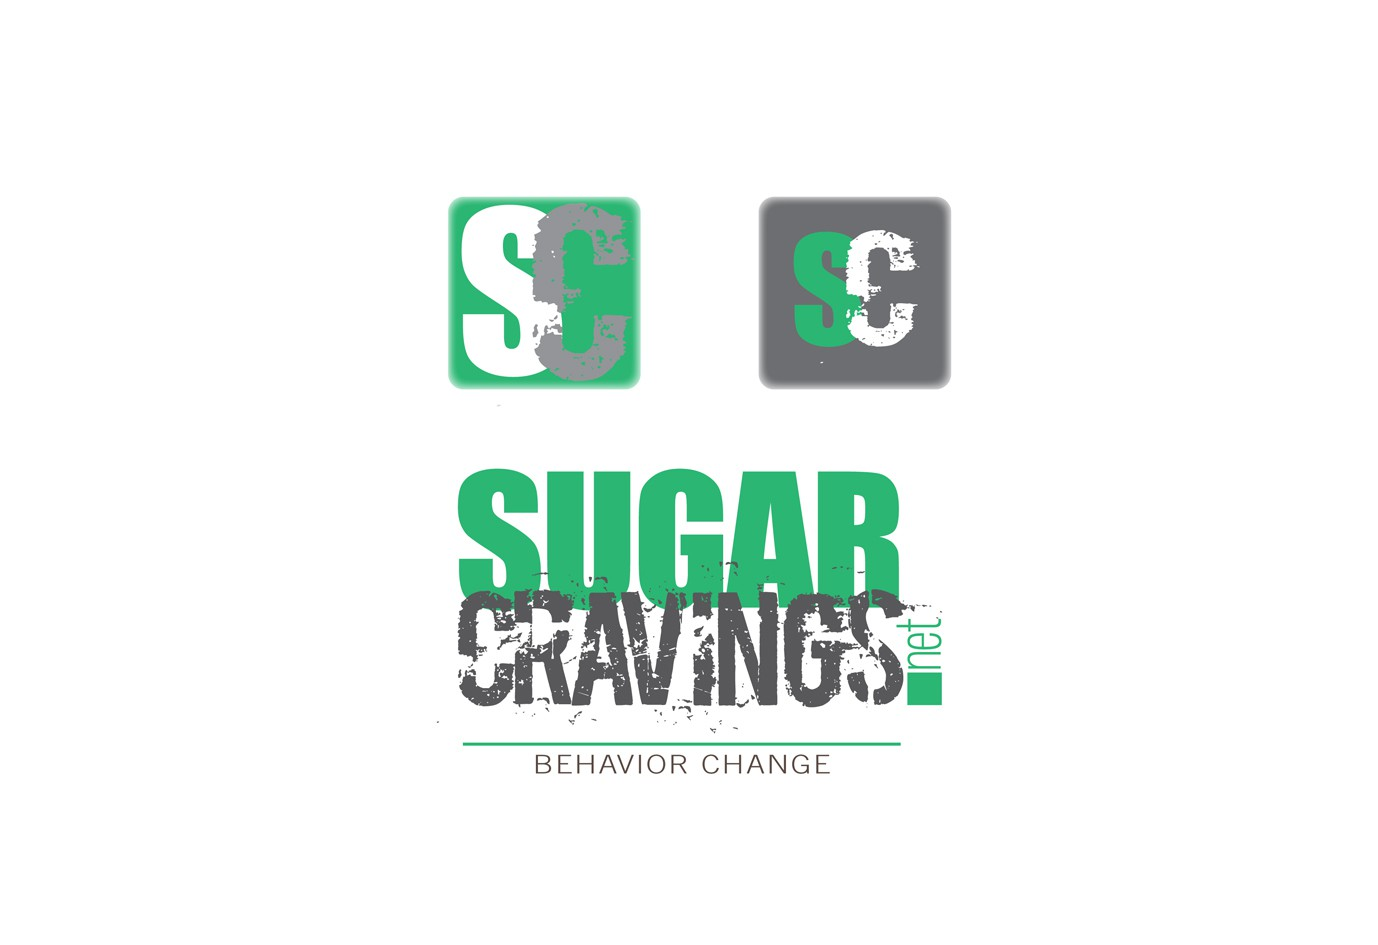 Create the next logo for Sugarcravings.net